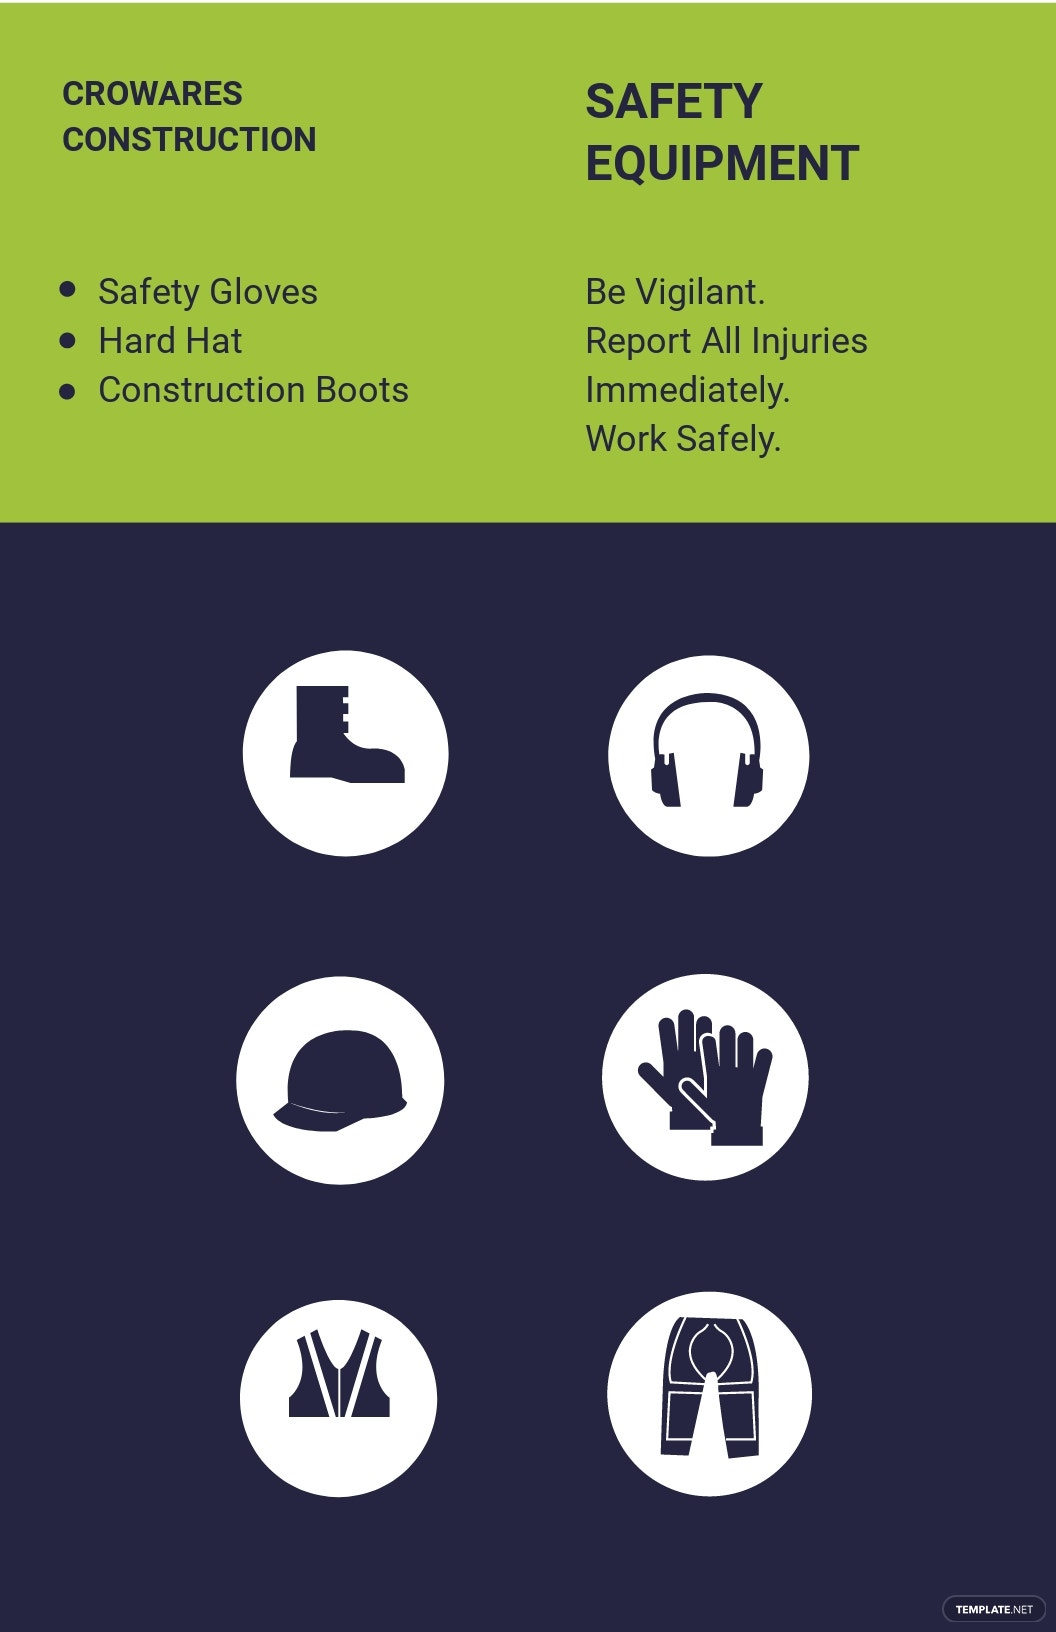 Construction & Equipment Safety Poster Template.jpe